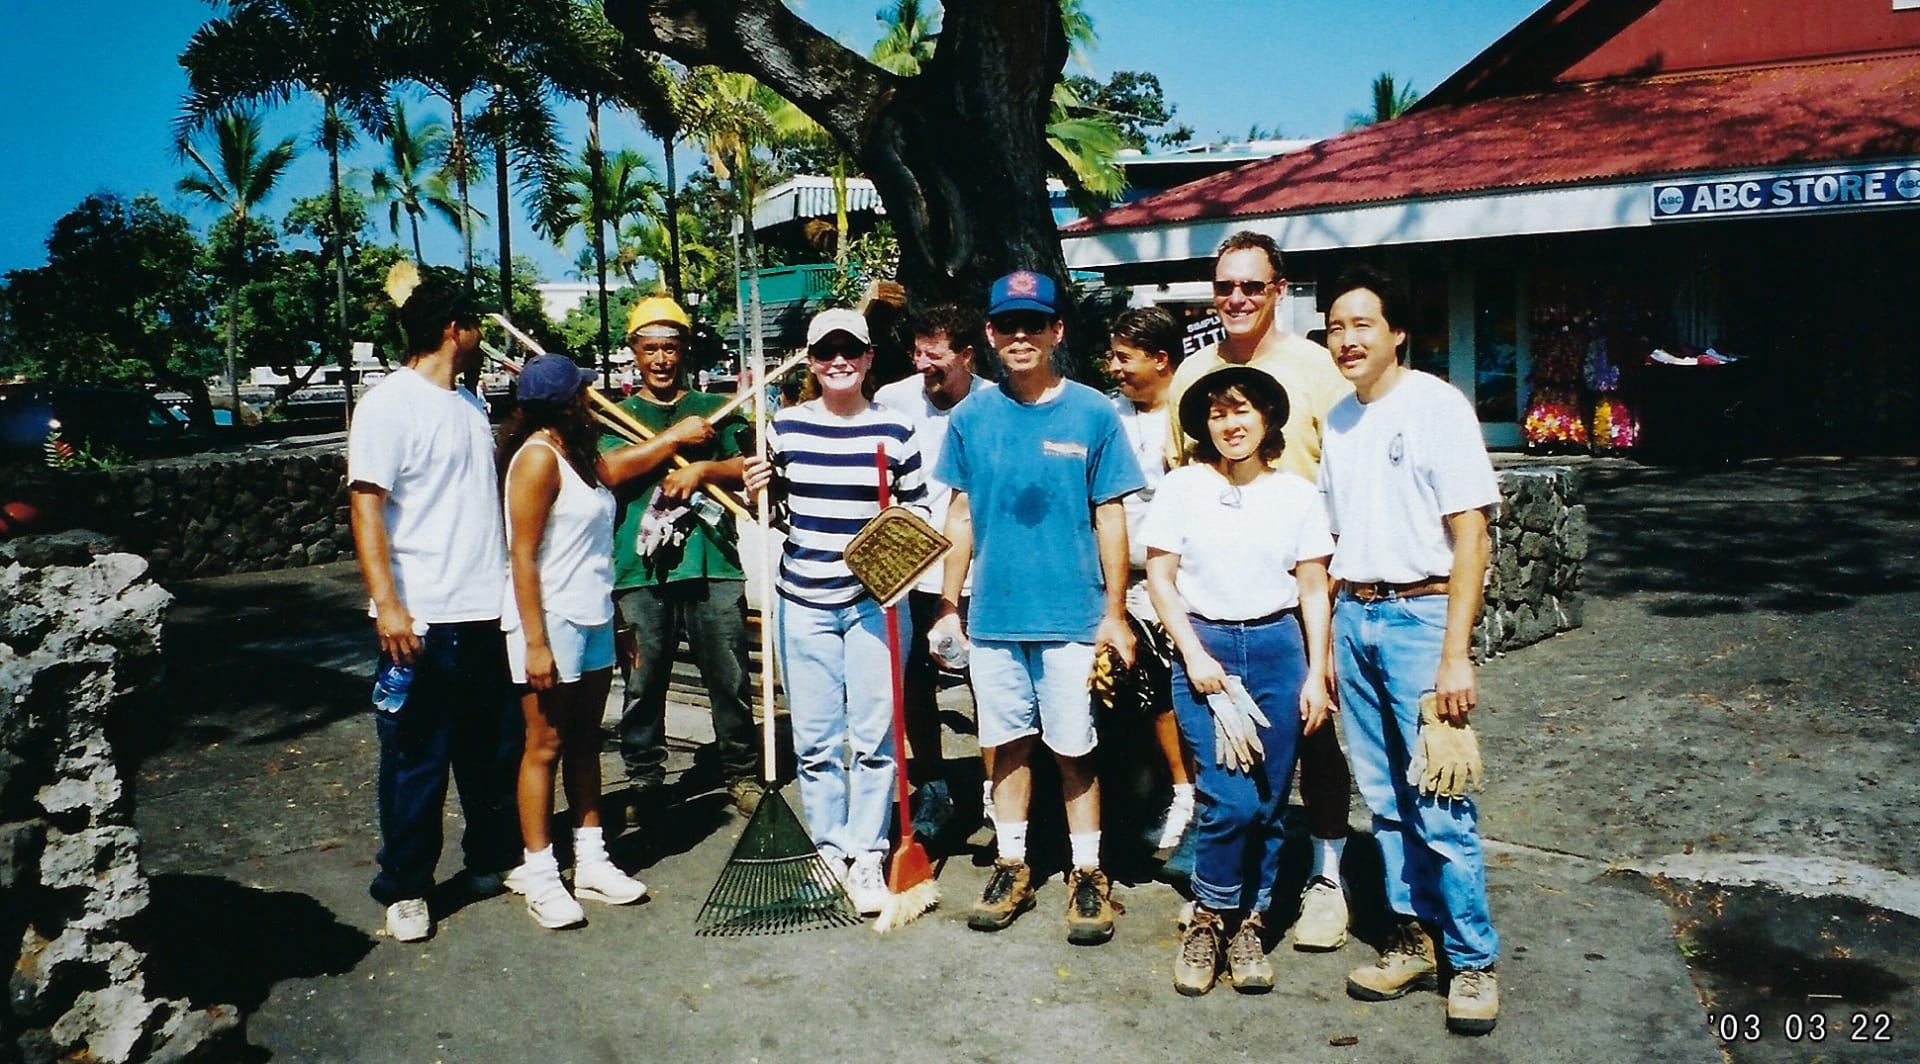 Kailua-Clean-Up-2000s-B-w1920.jpg